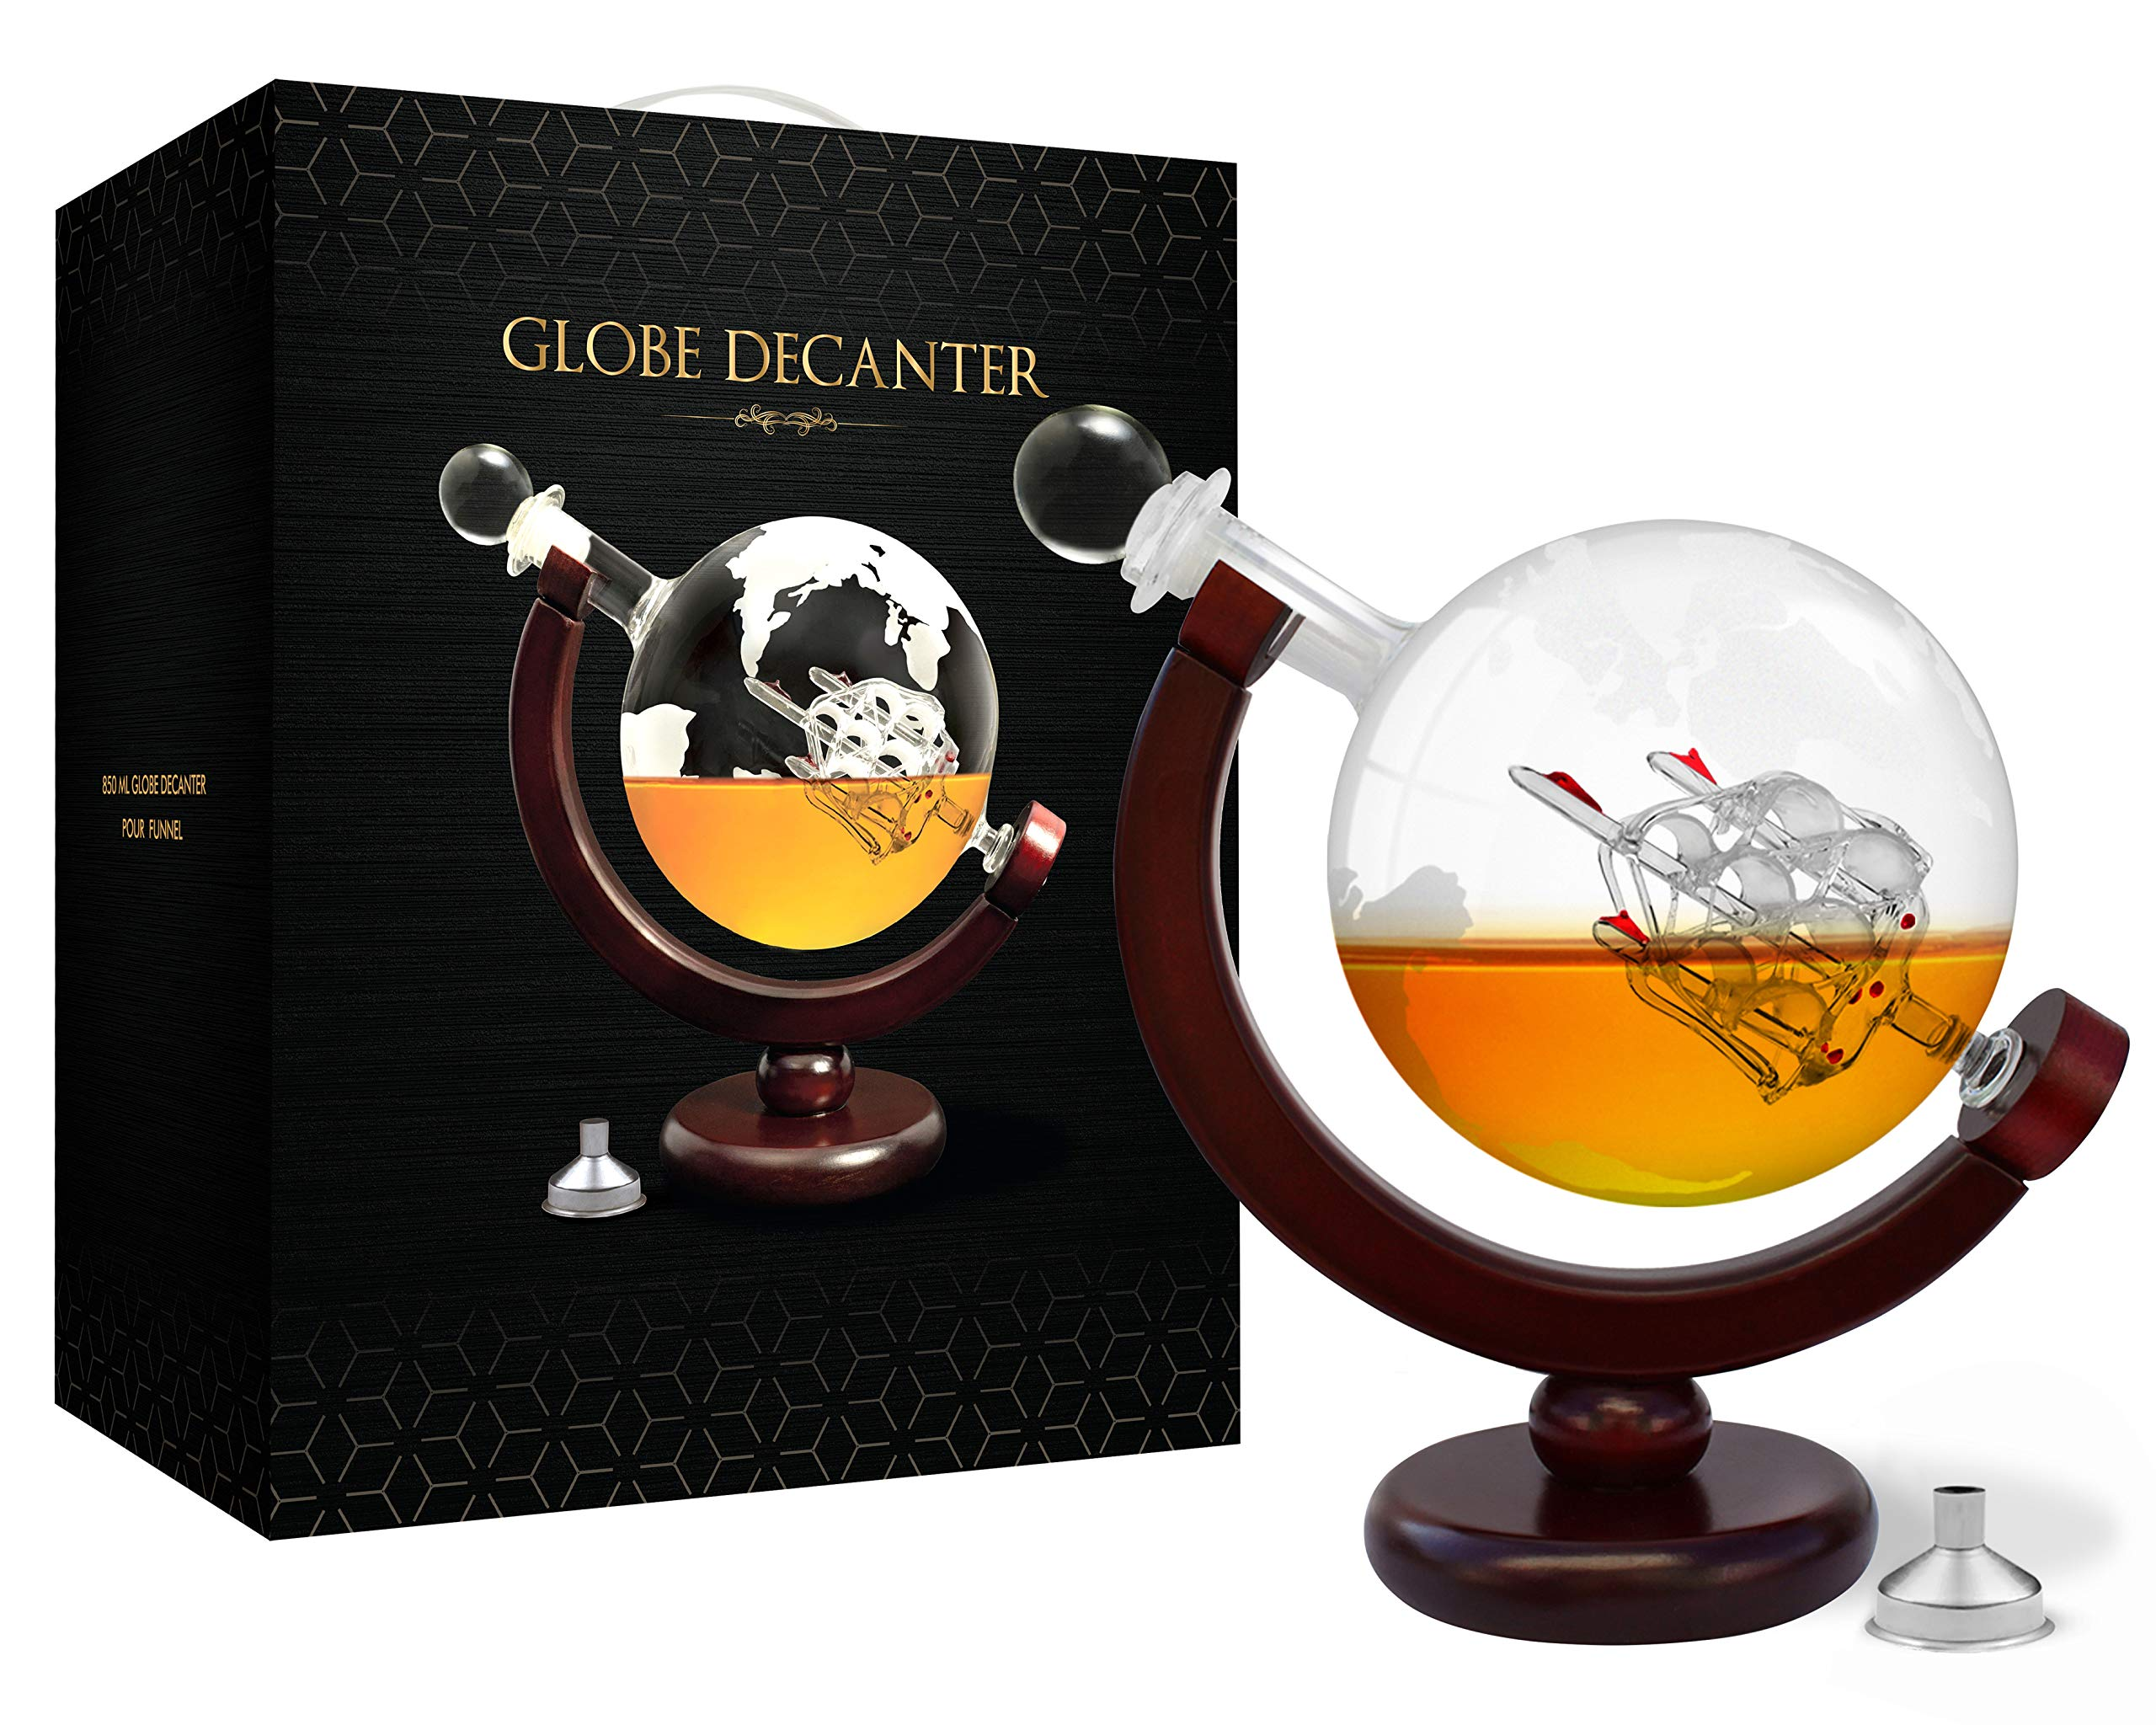 Whiskey Decanter Set World Etched Globe Decanter Antique Ship Glass Stopper Pour Funnel Liquor Dispenser Spirits Scotch Bourbon Vodka Rum Brandy Perfect Gift (Decanter 850 ml with metal funnel) by flybold